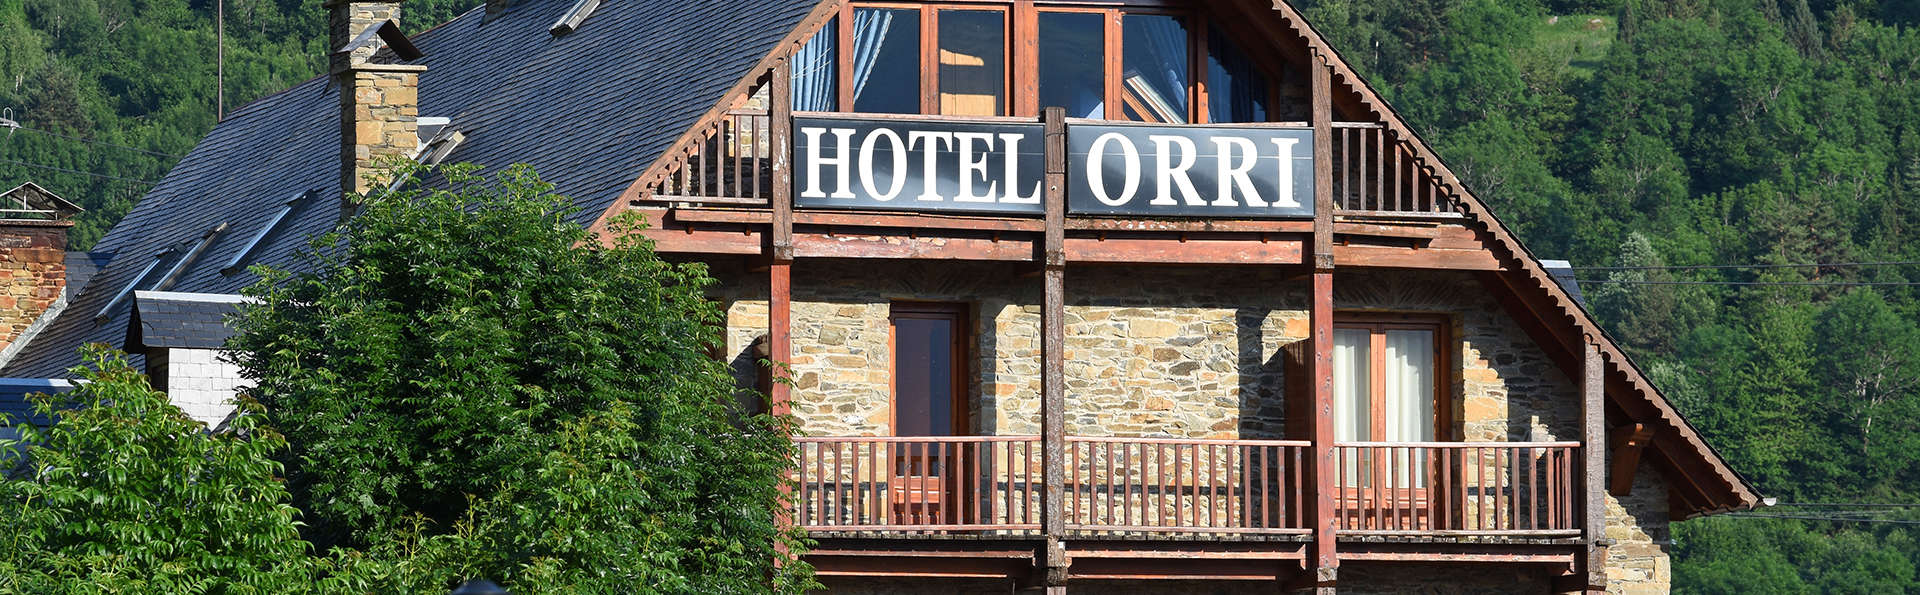 RVHotels Orri - Edit_Front2.jpg